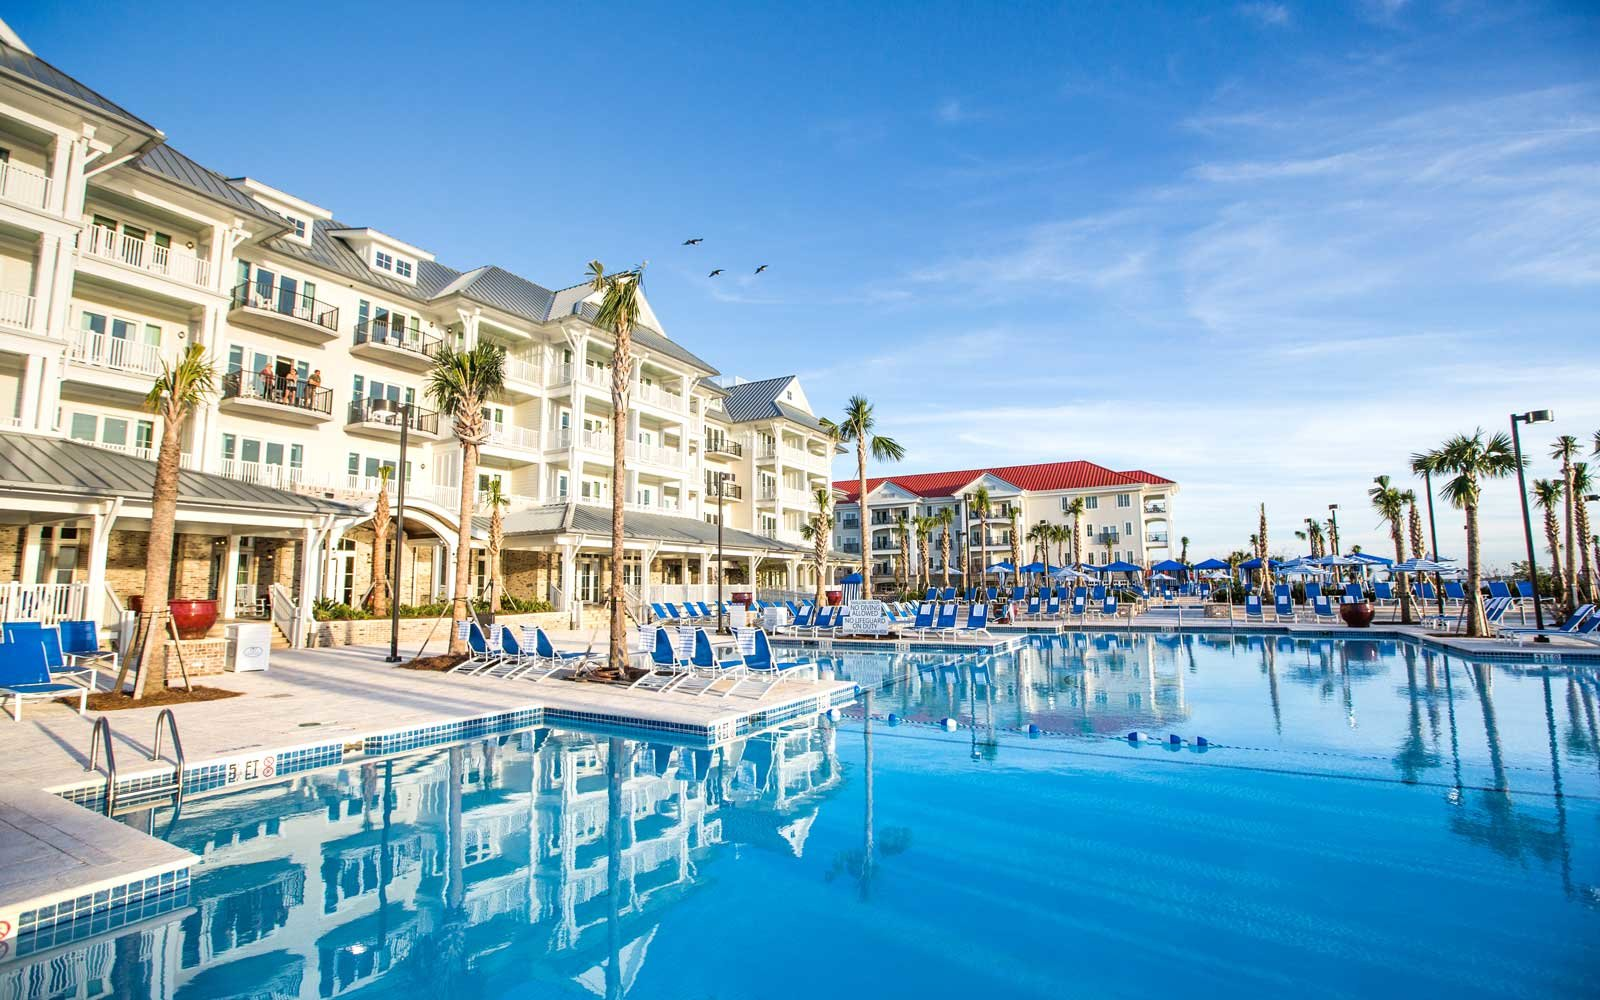 Save 30% off Stays at This Family-Friendly Resort on the Charleston Harbor | Travel + Leisure